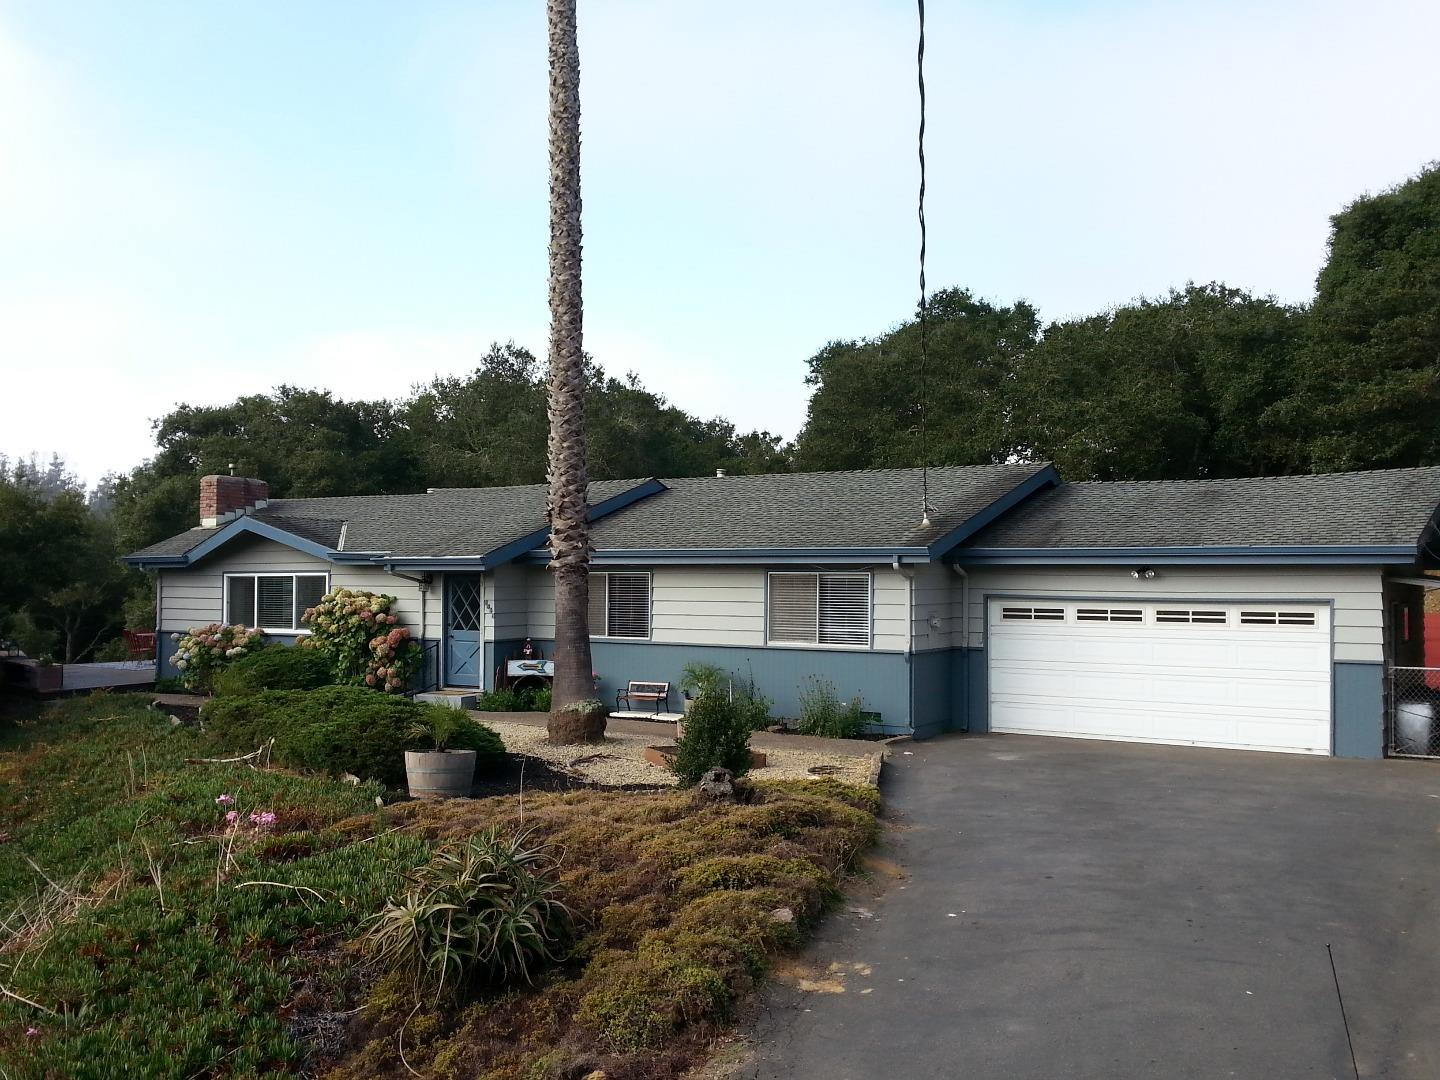 Single Family Home for Sale at 665 Paradise Road 665 Paradise Road Salinas, California 93907 United States